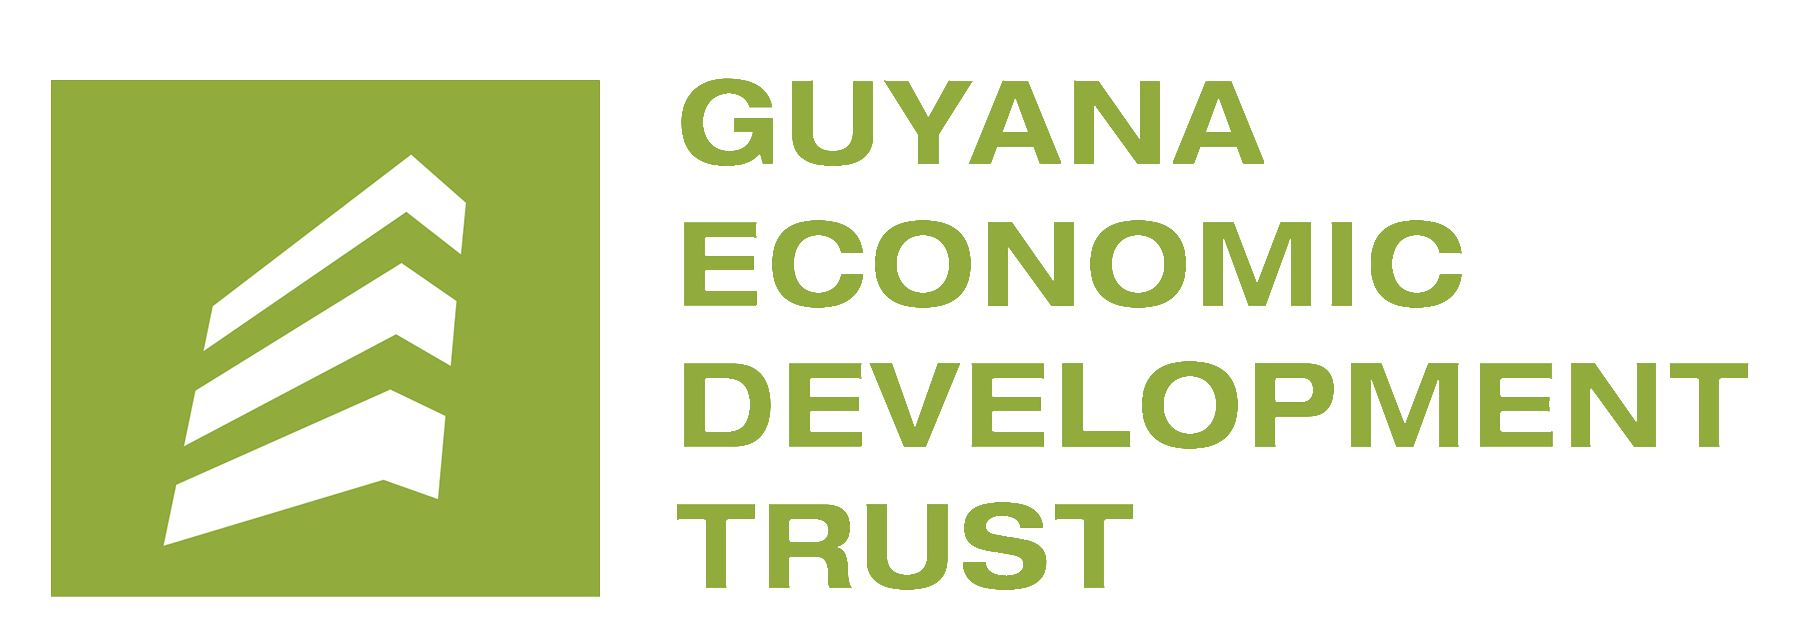 Guyana Economic Development Trust